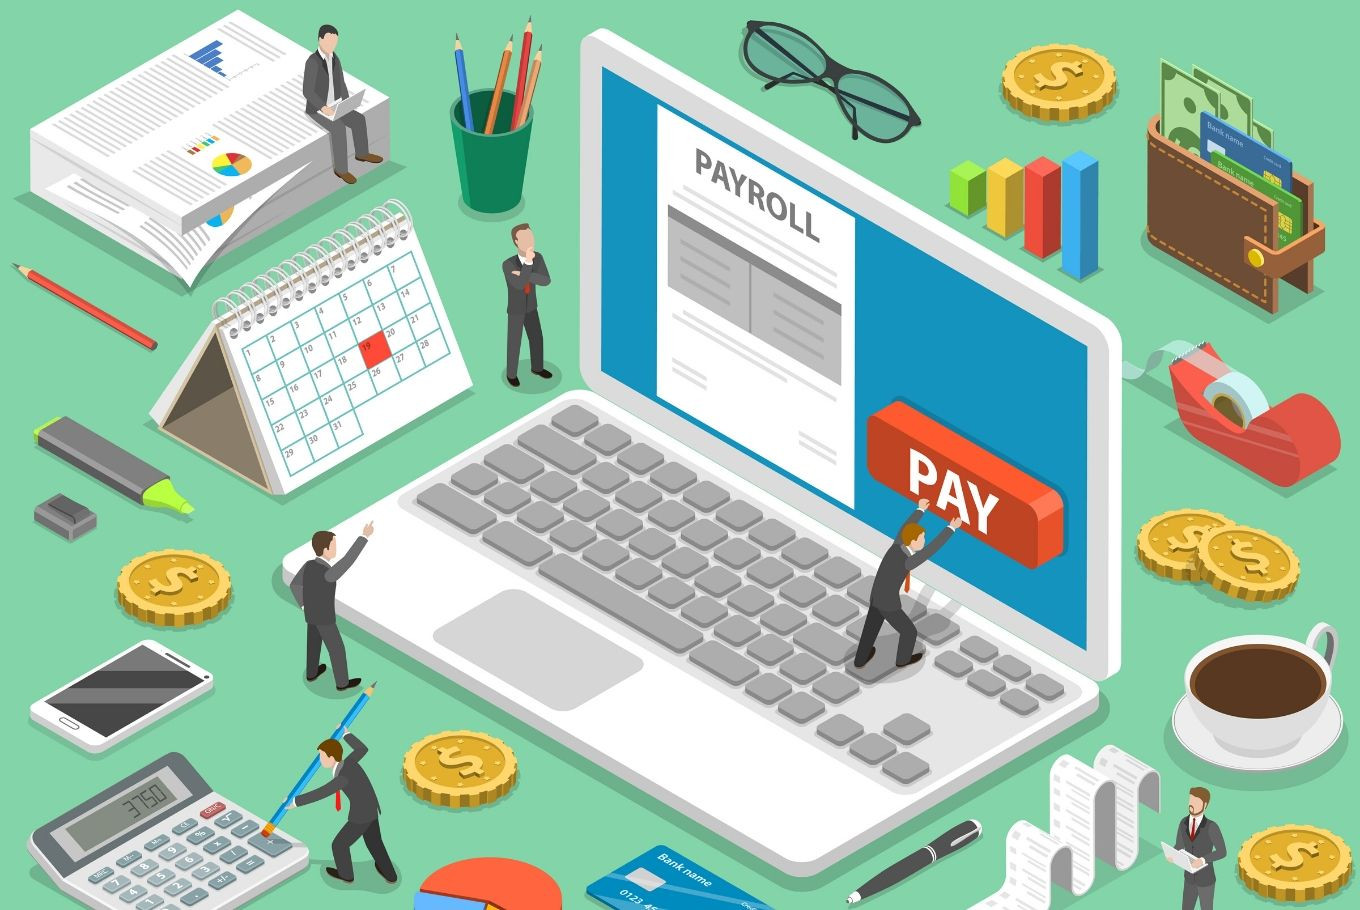 Make sure your Payroll System can handle the complexities of your workforce